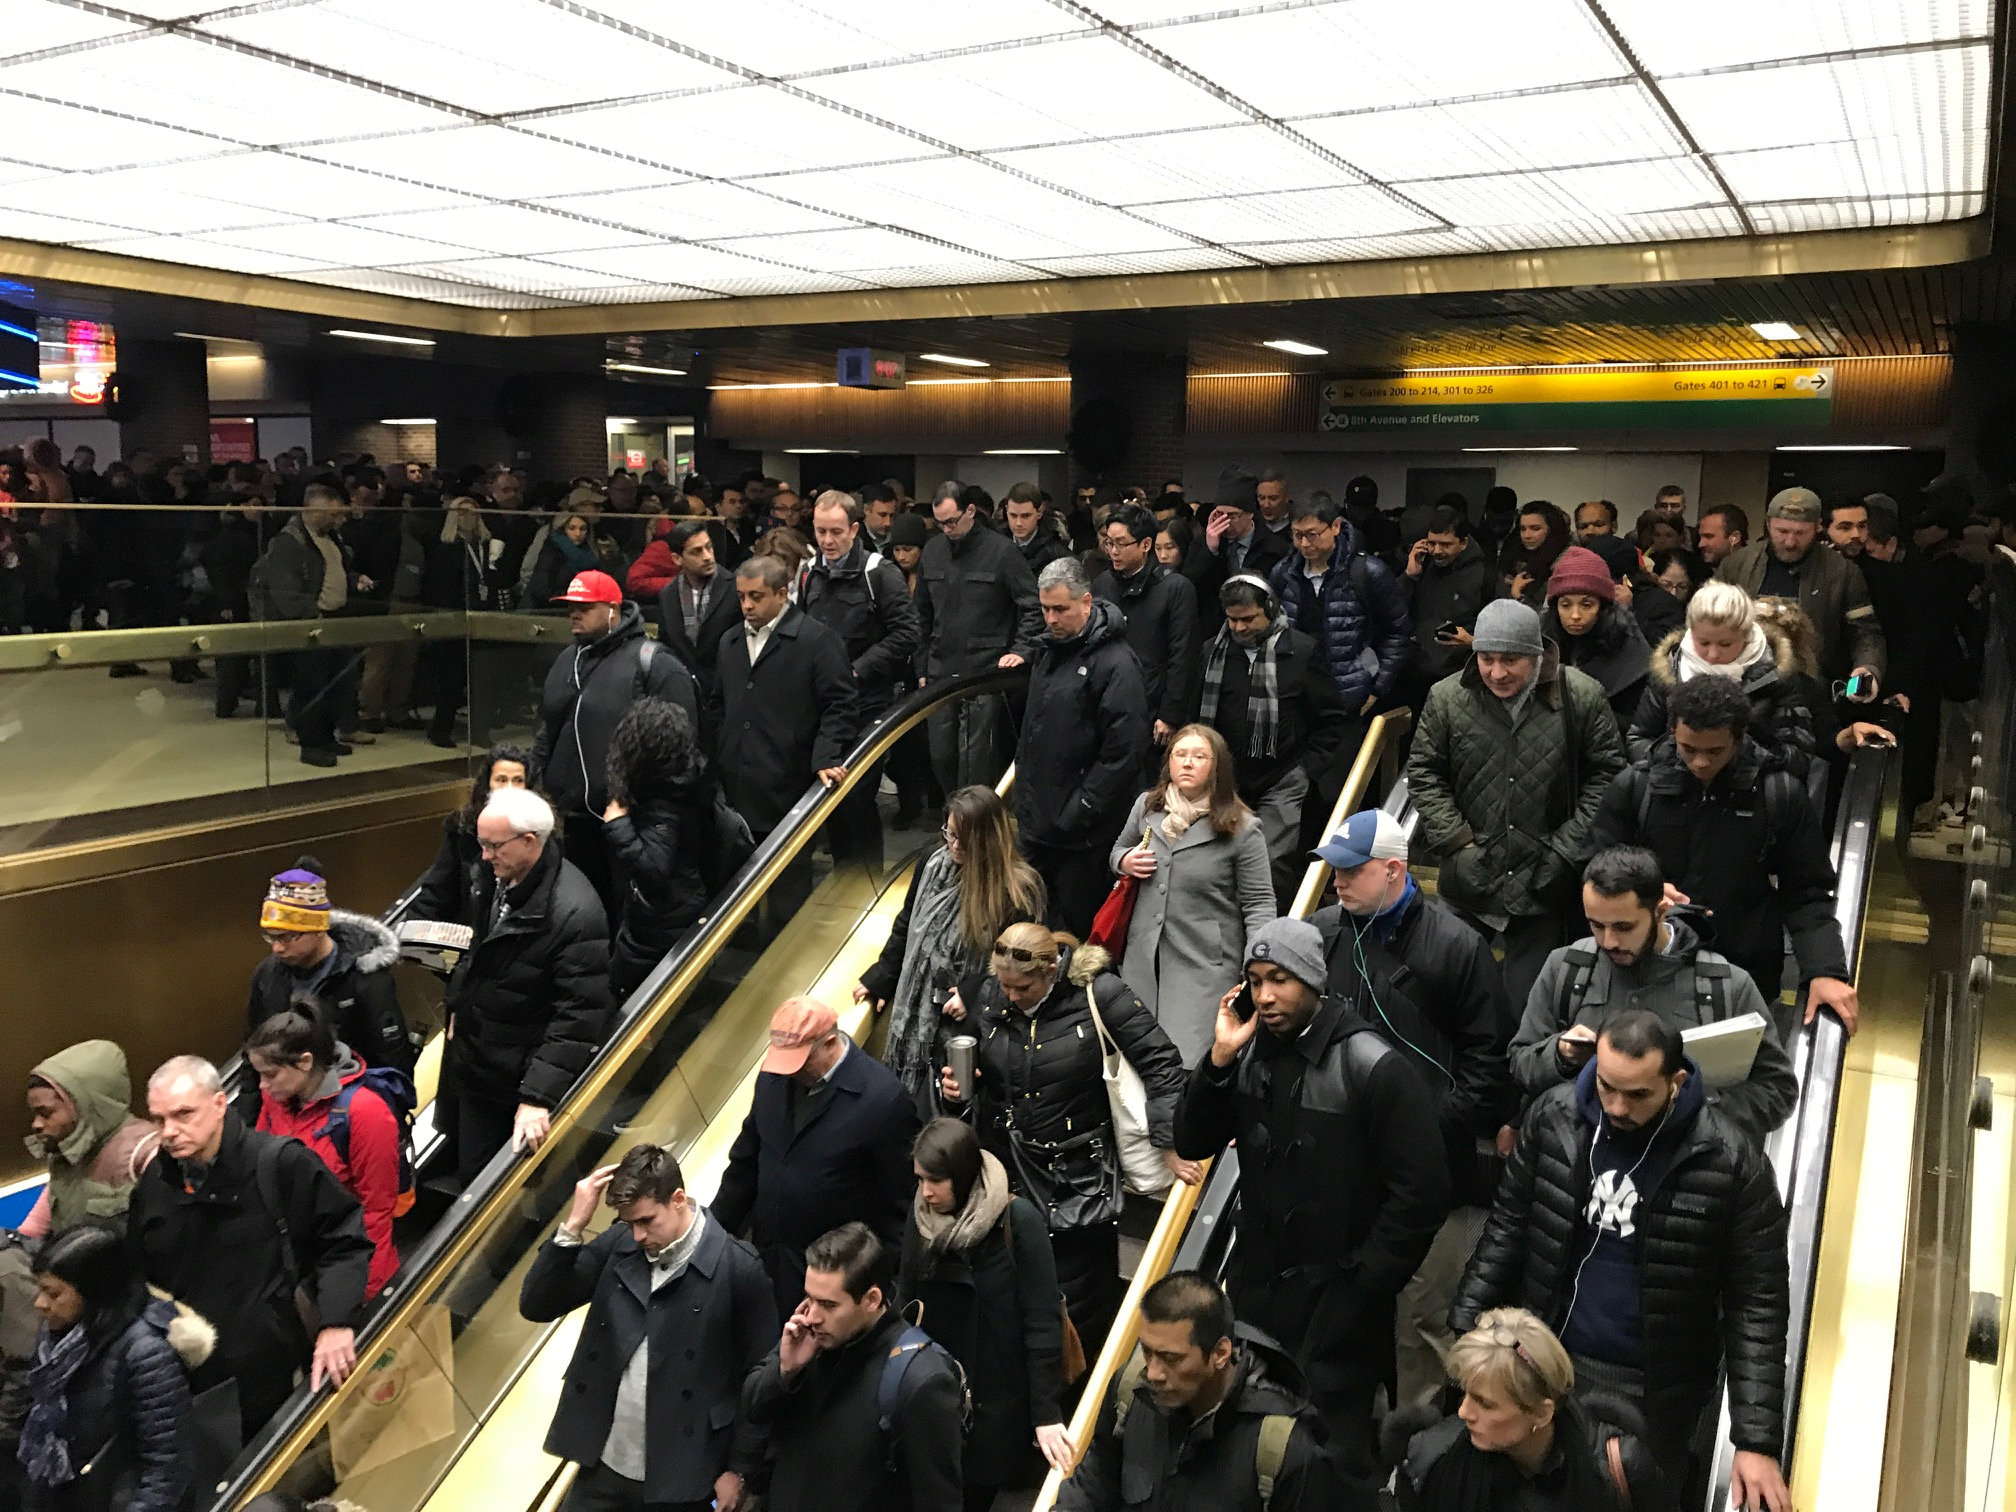 Commuters exit the New York Port Authority in New York City, U.S. December 11, 2017 after reports of an explosion.